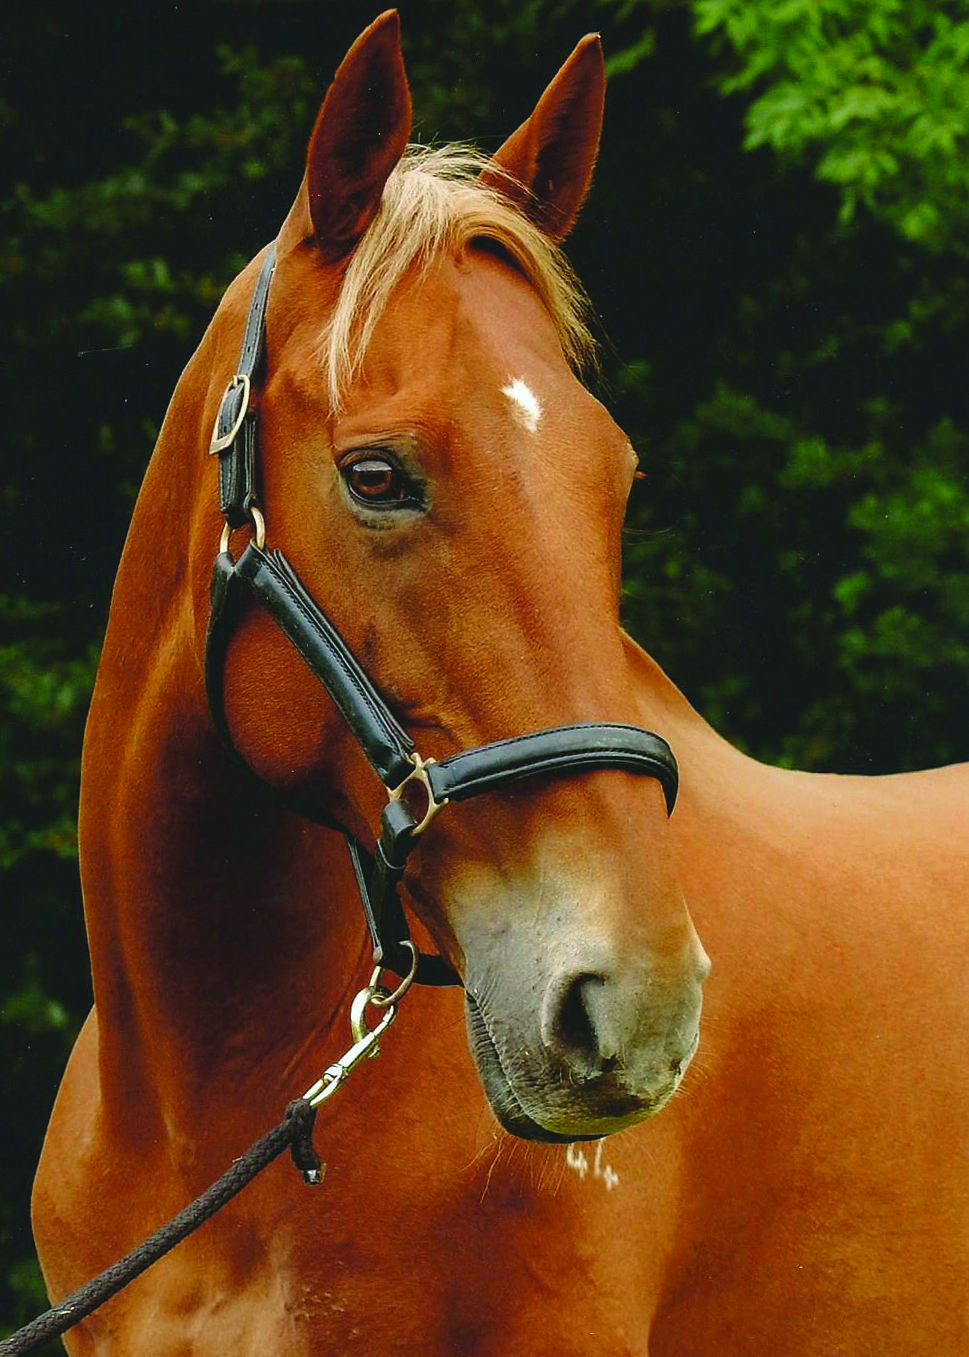 Image of a chestnut thoroughbred horse wearing a leather head collar